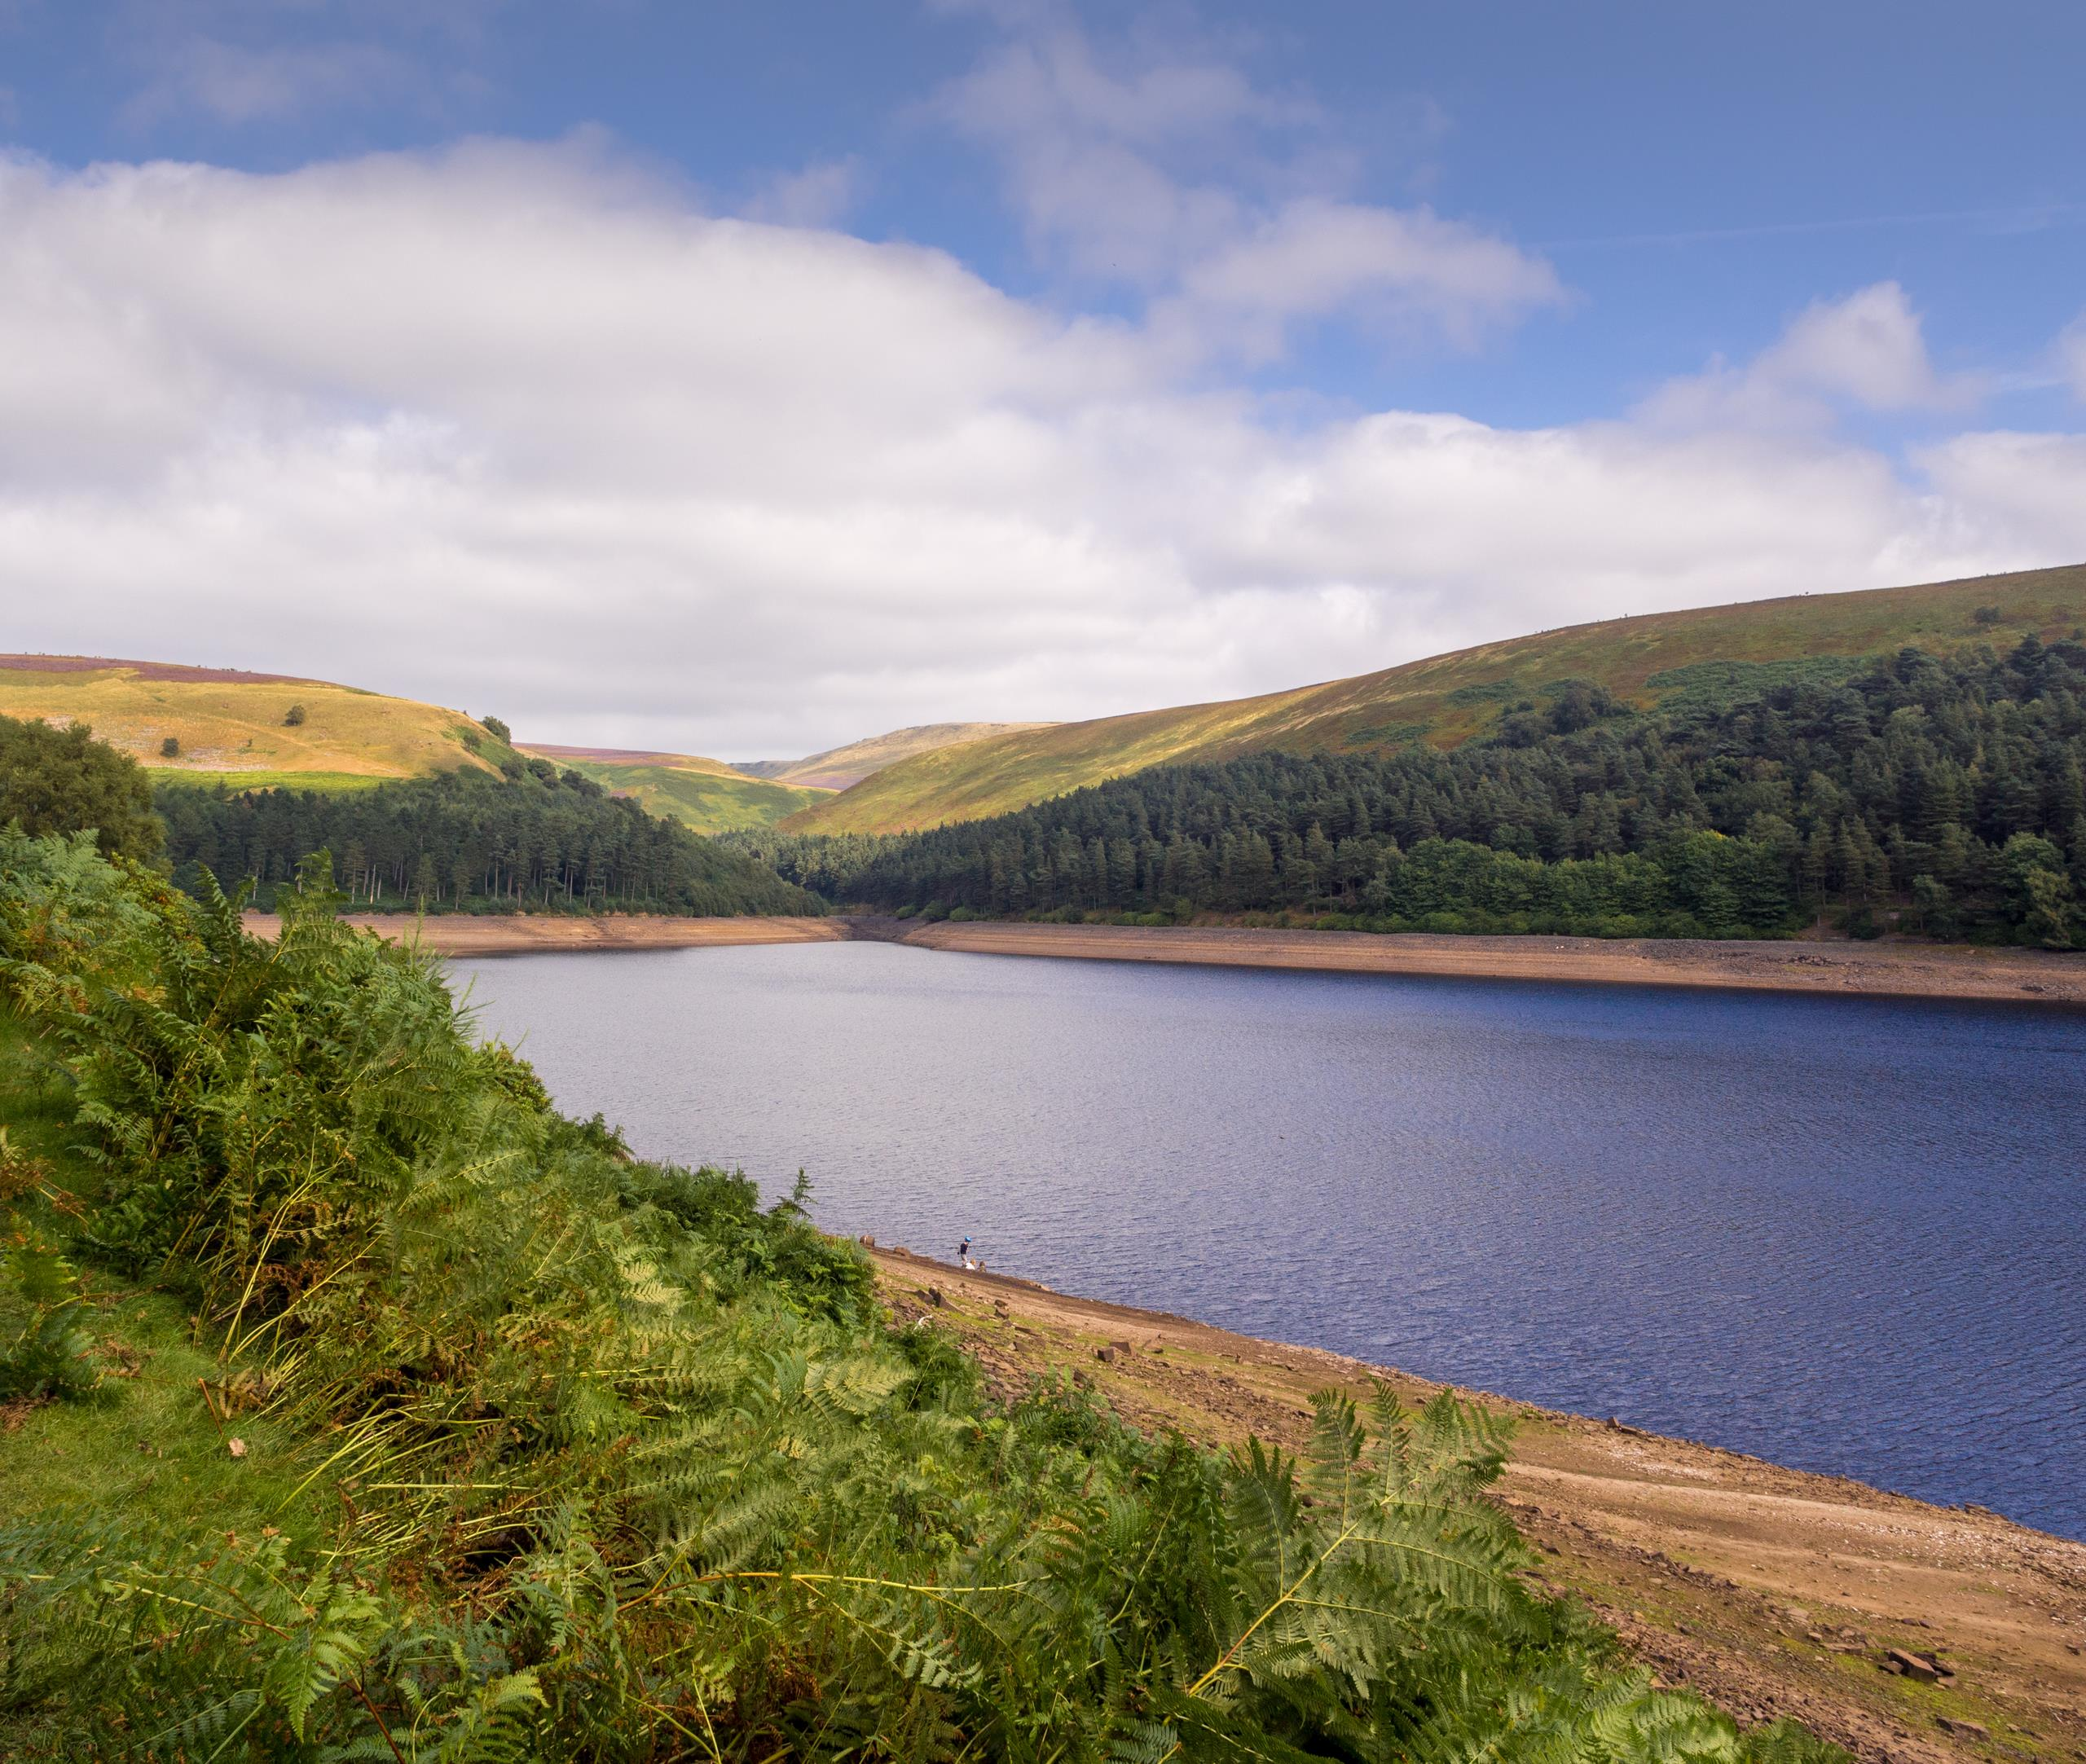 Picturesque view of Upper Derwent reservoir at low level